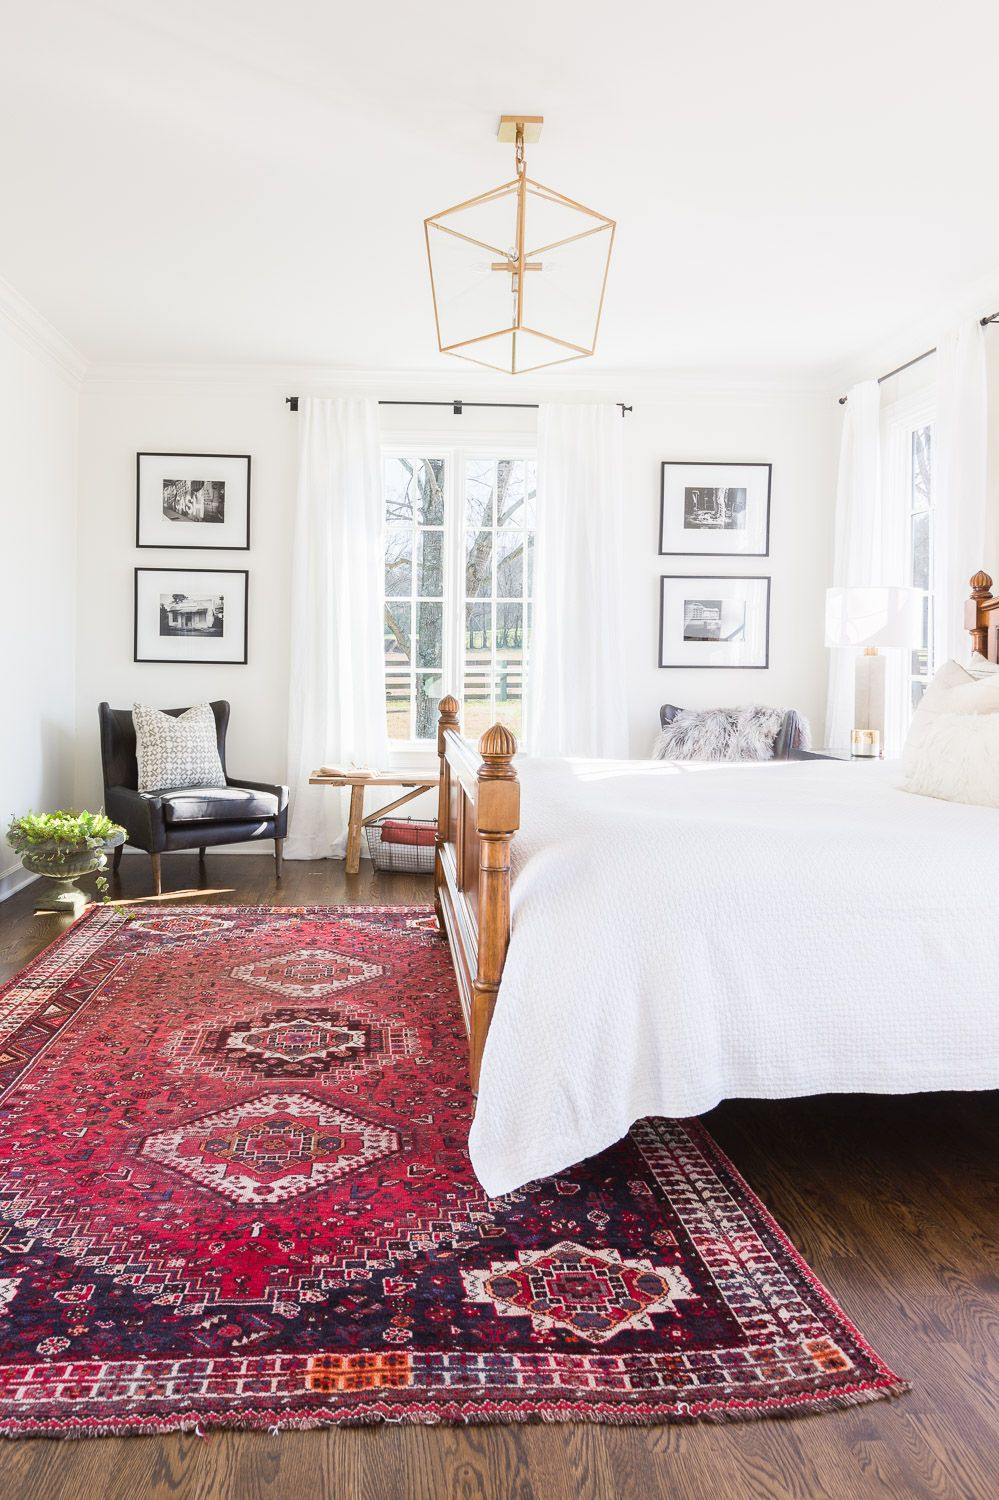 Modern Farmhouse Master Bedroom Design The Traditional Rug Acts